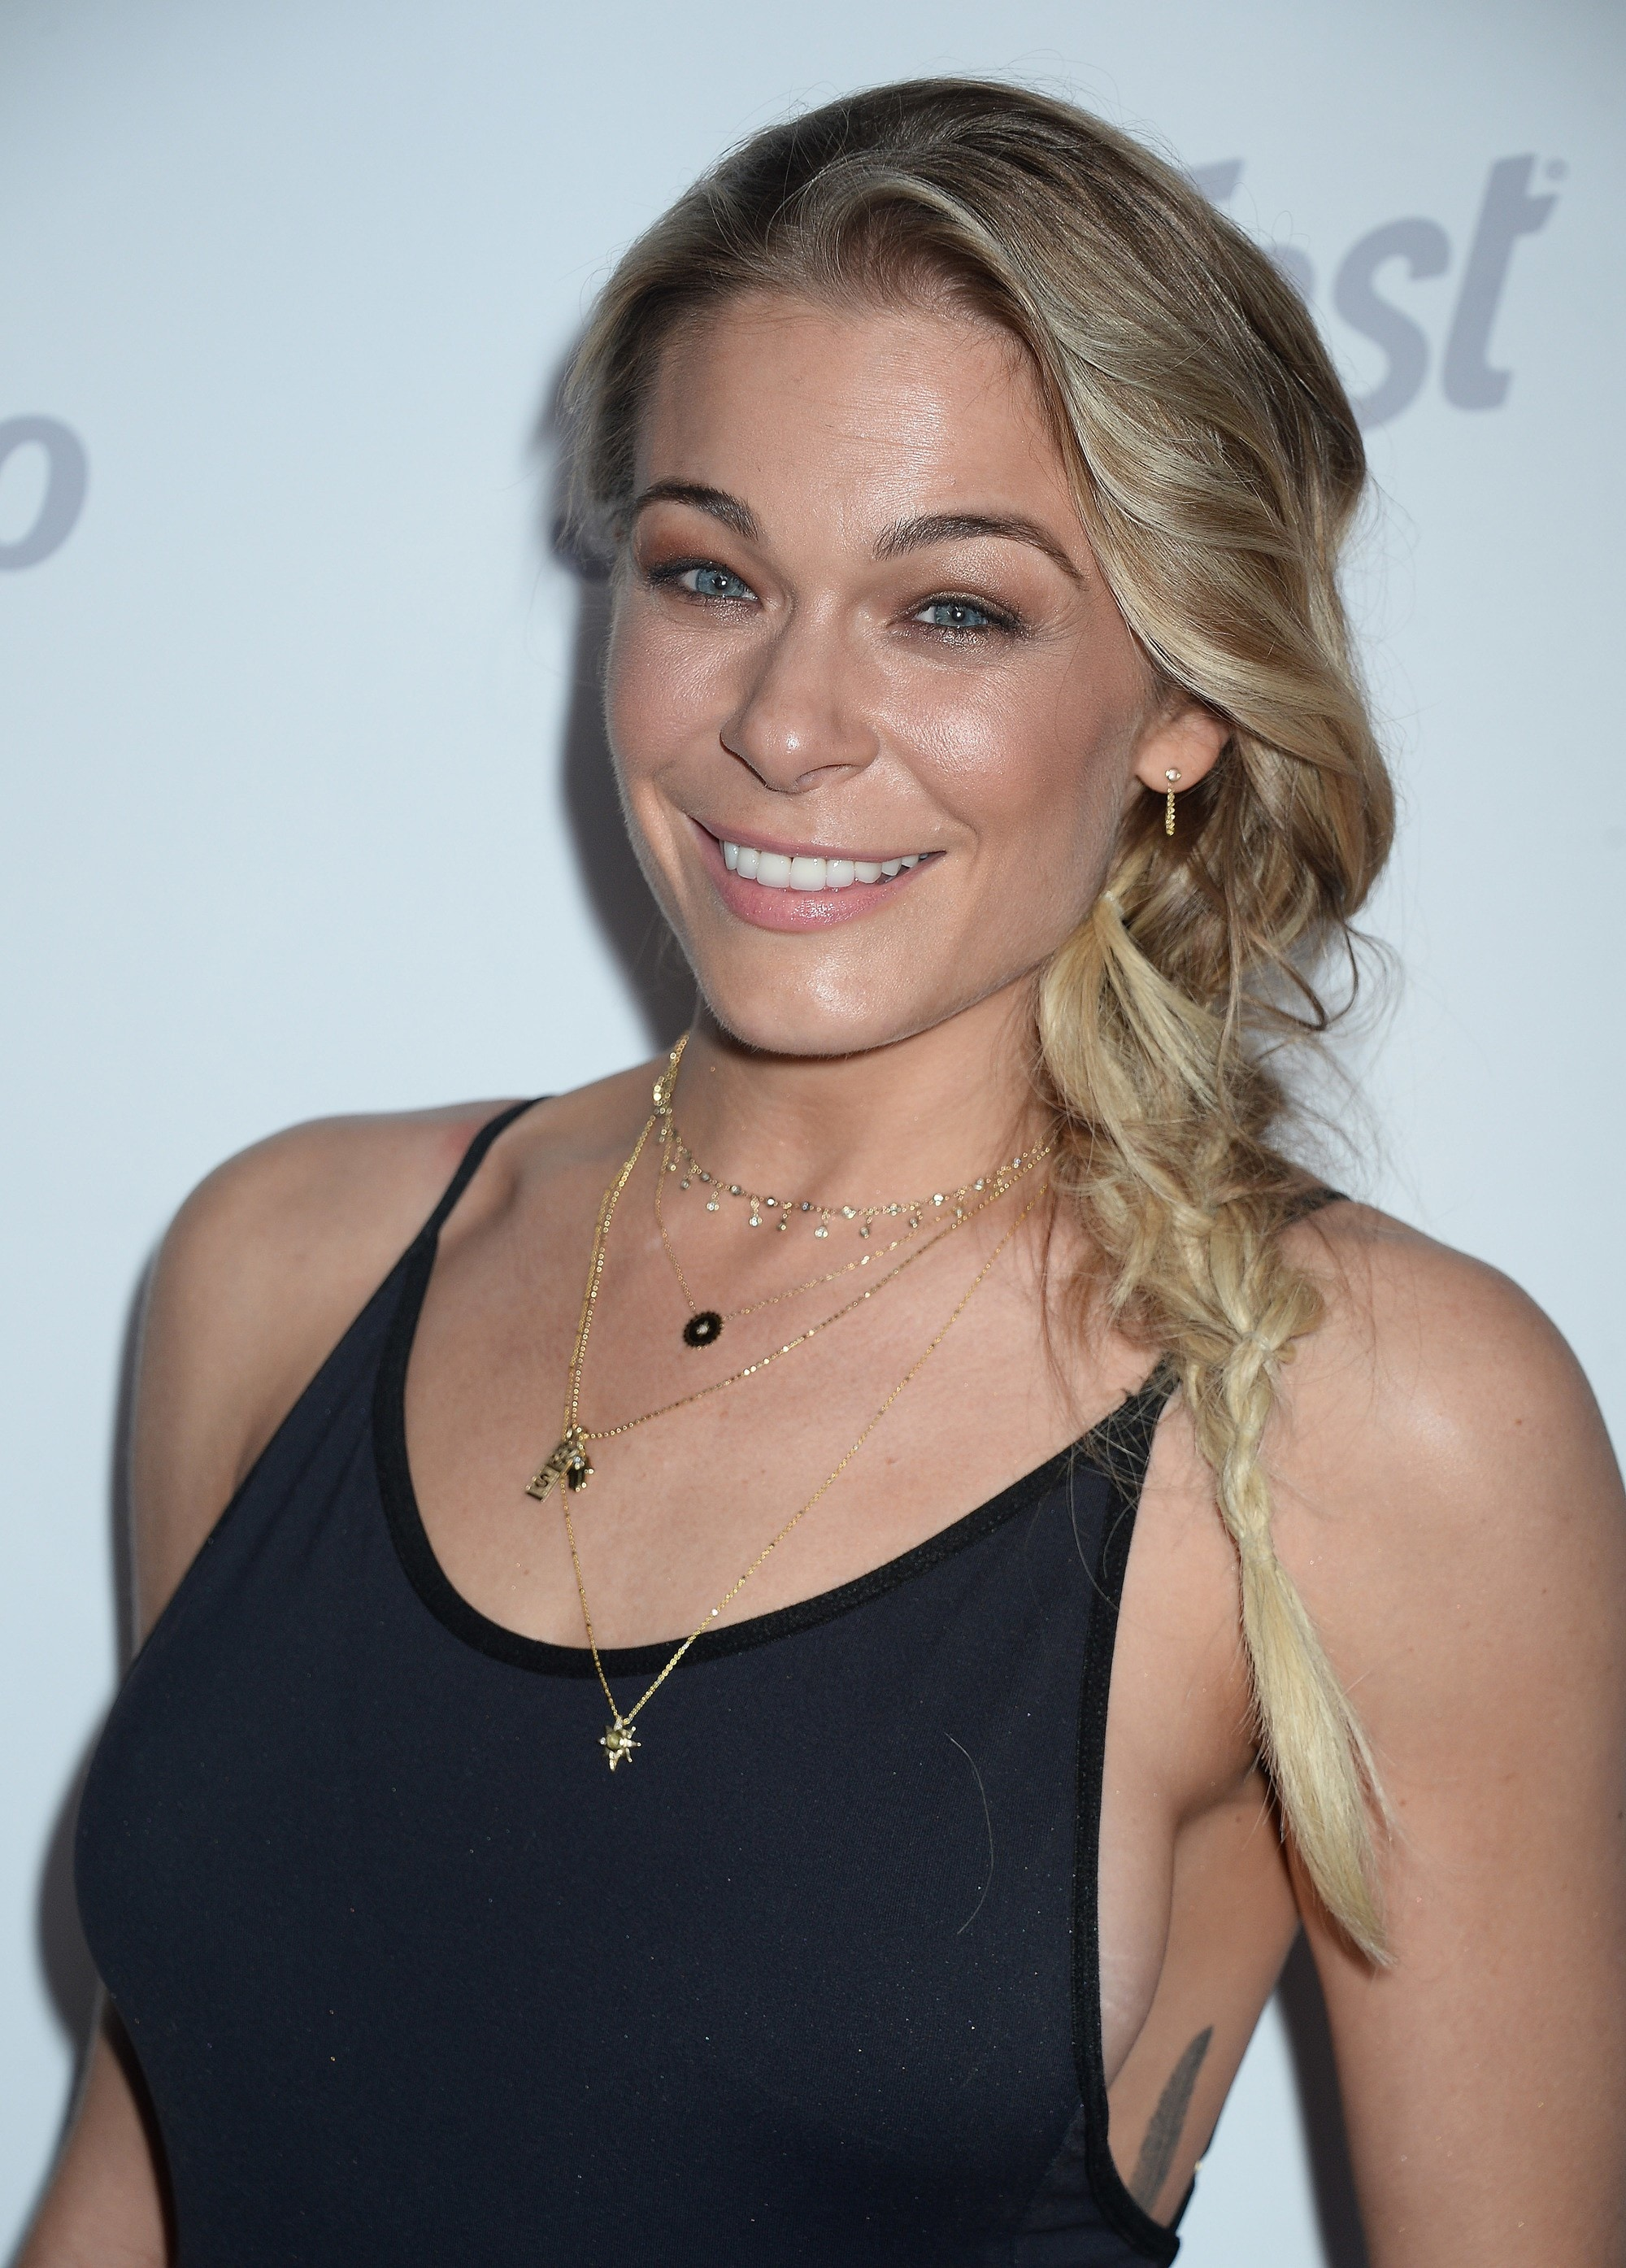 Leann Rimes Just Got A Lob Cut For The First Time Amp It S